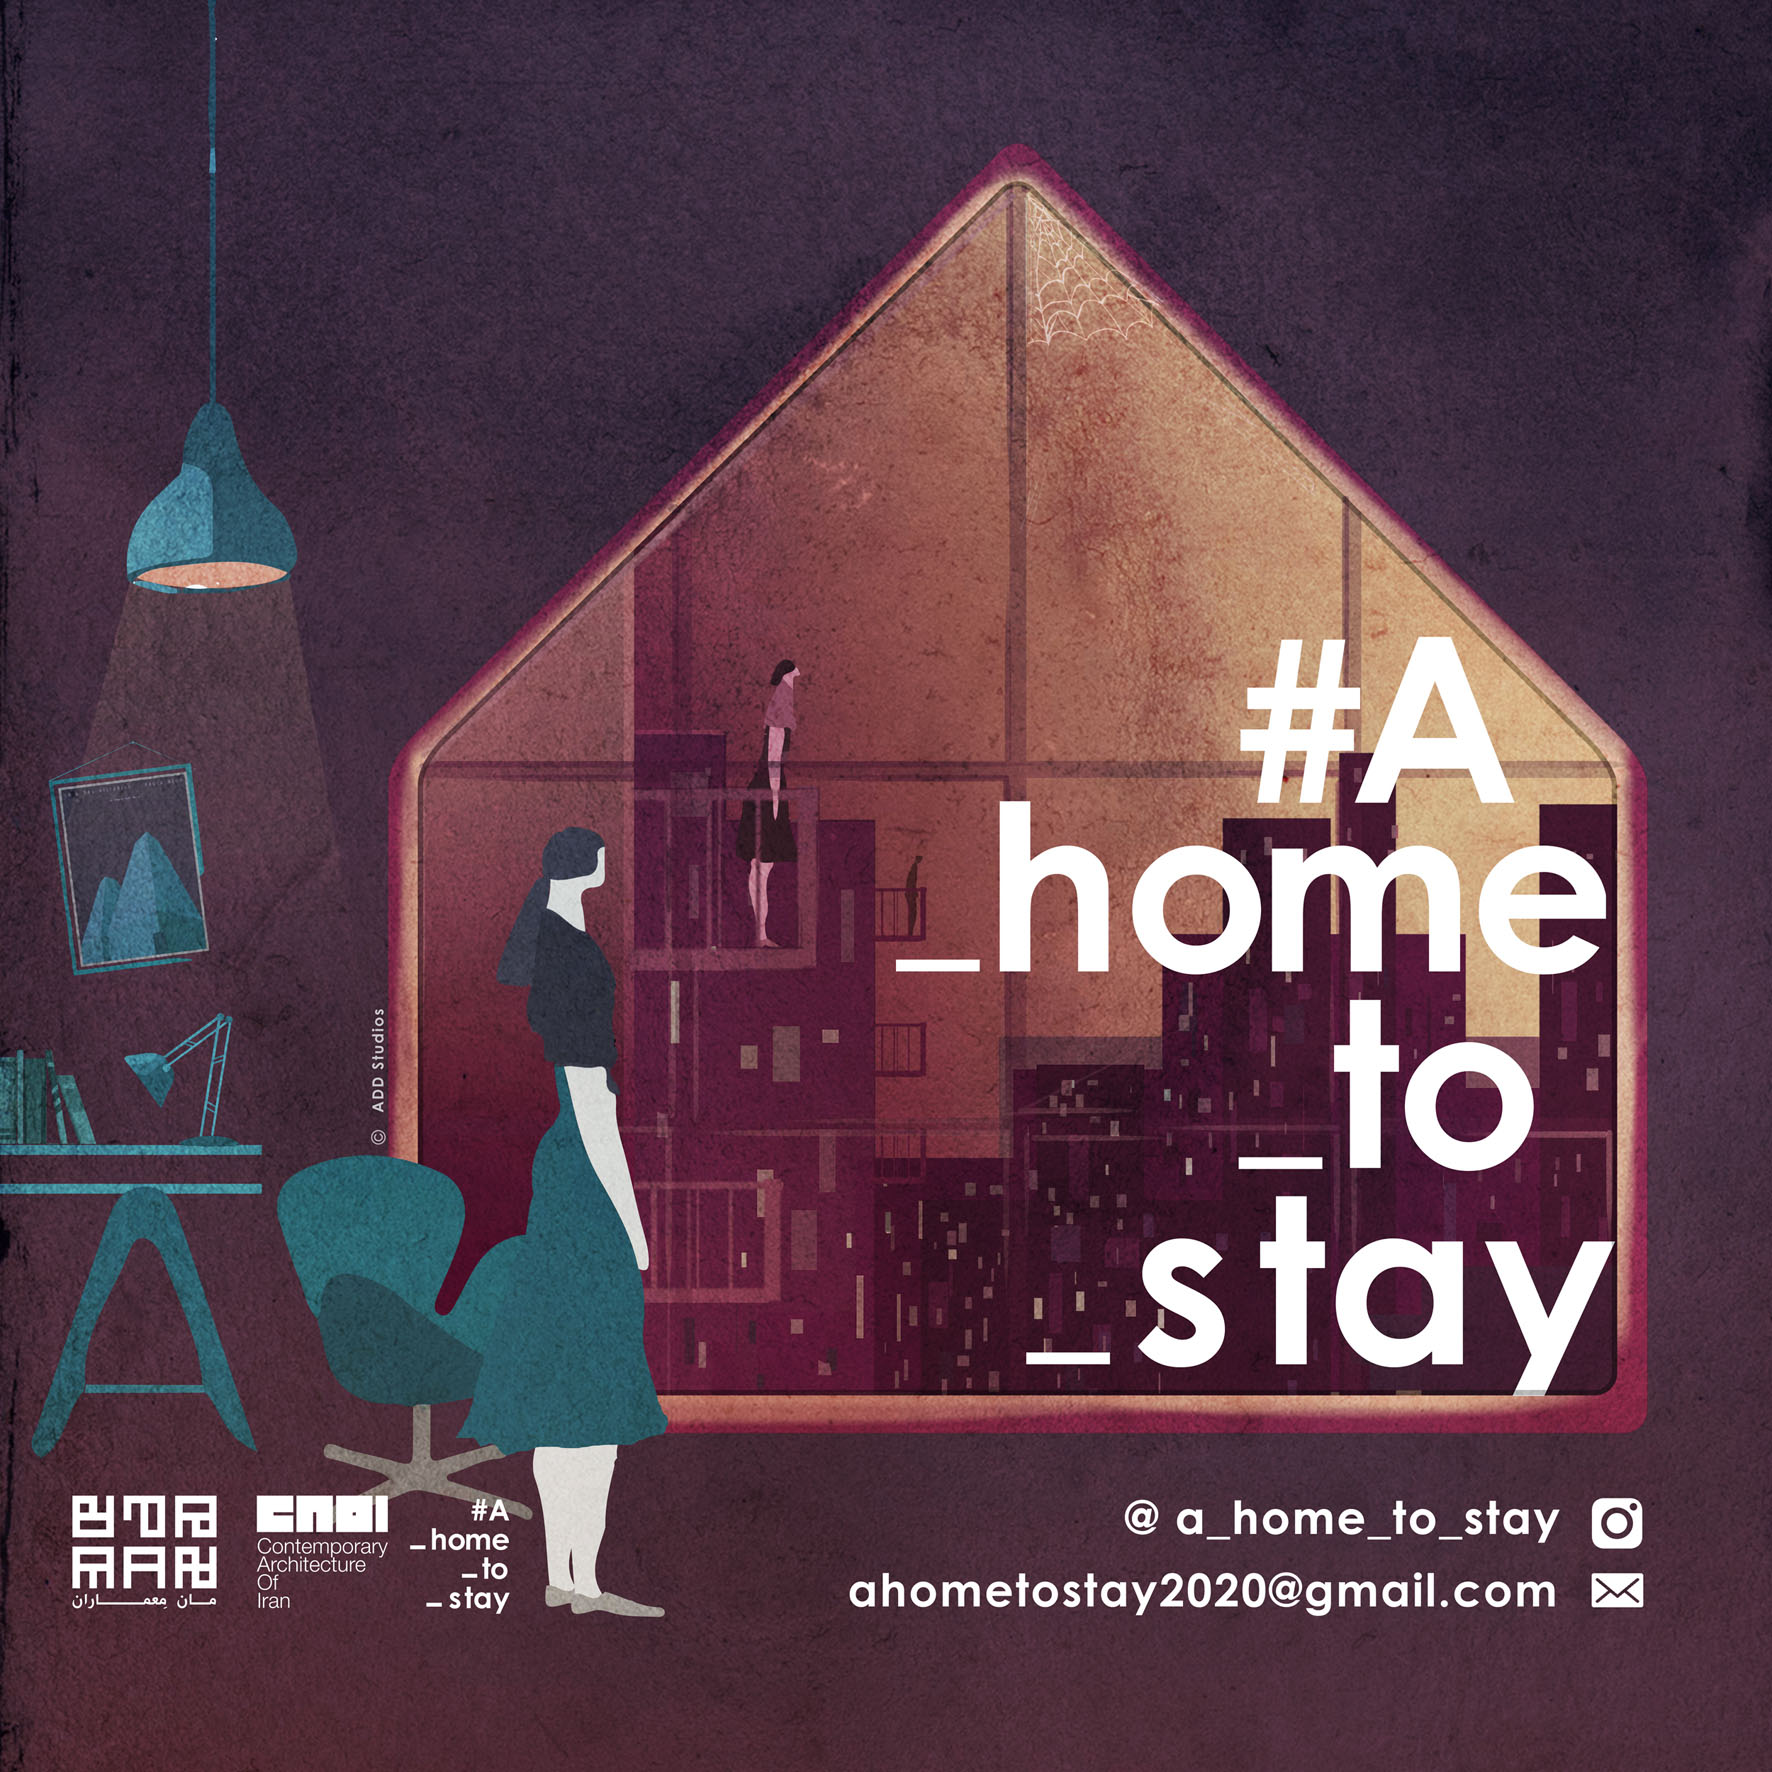 Campaign of A home to stay